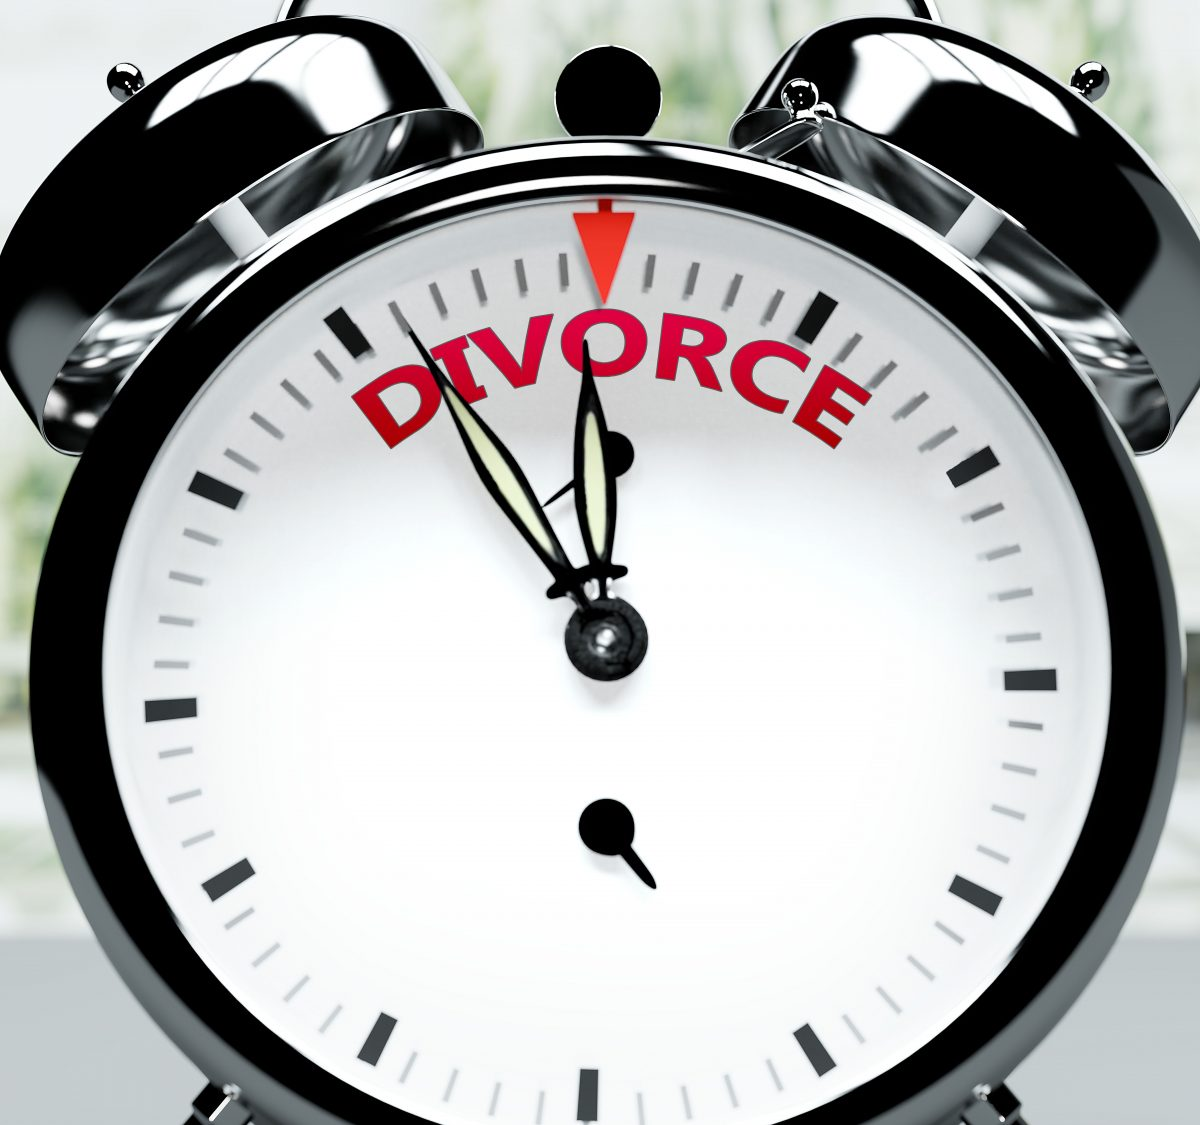 A clock symbolizing time for divorce, to begin the divorce process meet with Royal Oak Divorce Law Firm.